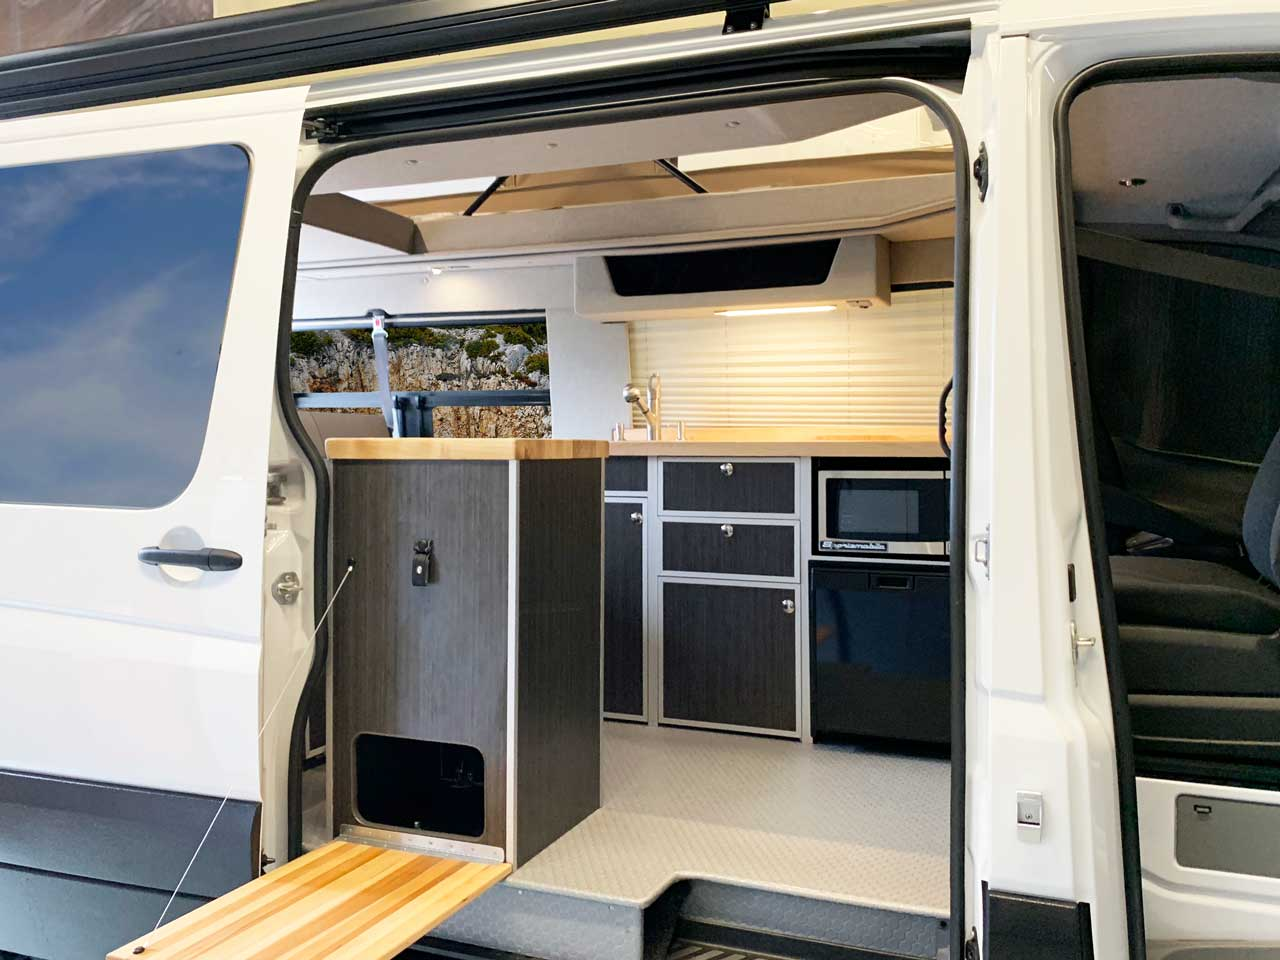 interior van sprinter conversion sportsmobile inside step 4x4 moderna contemporary cabinets s12 pop attractive throughout very quality